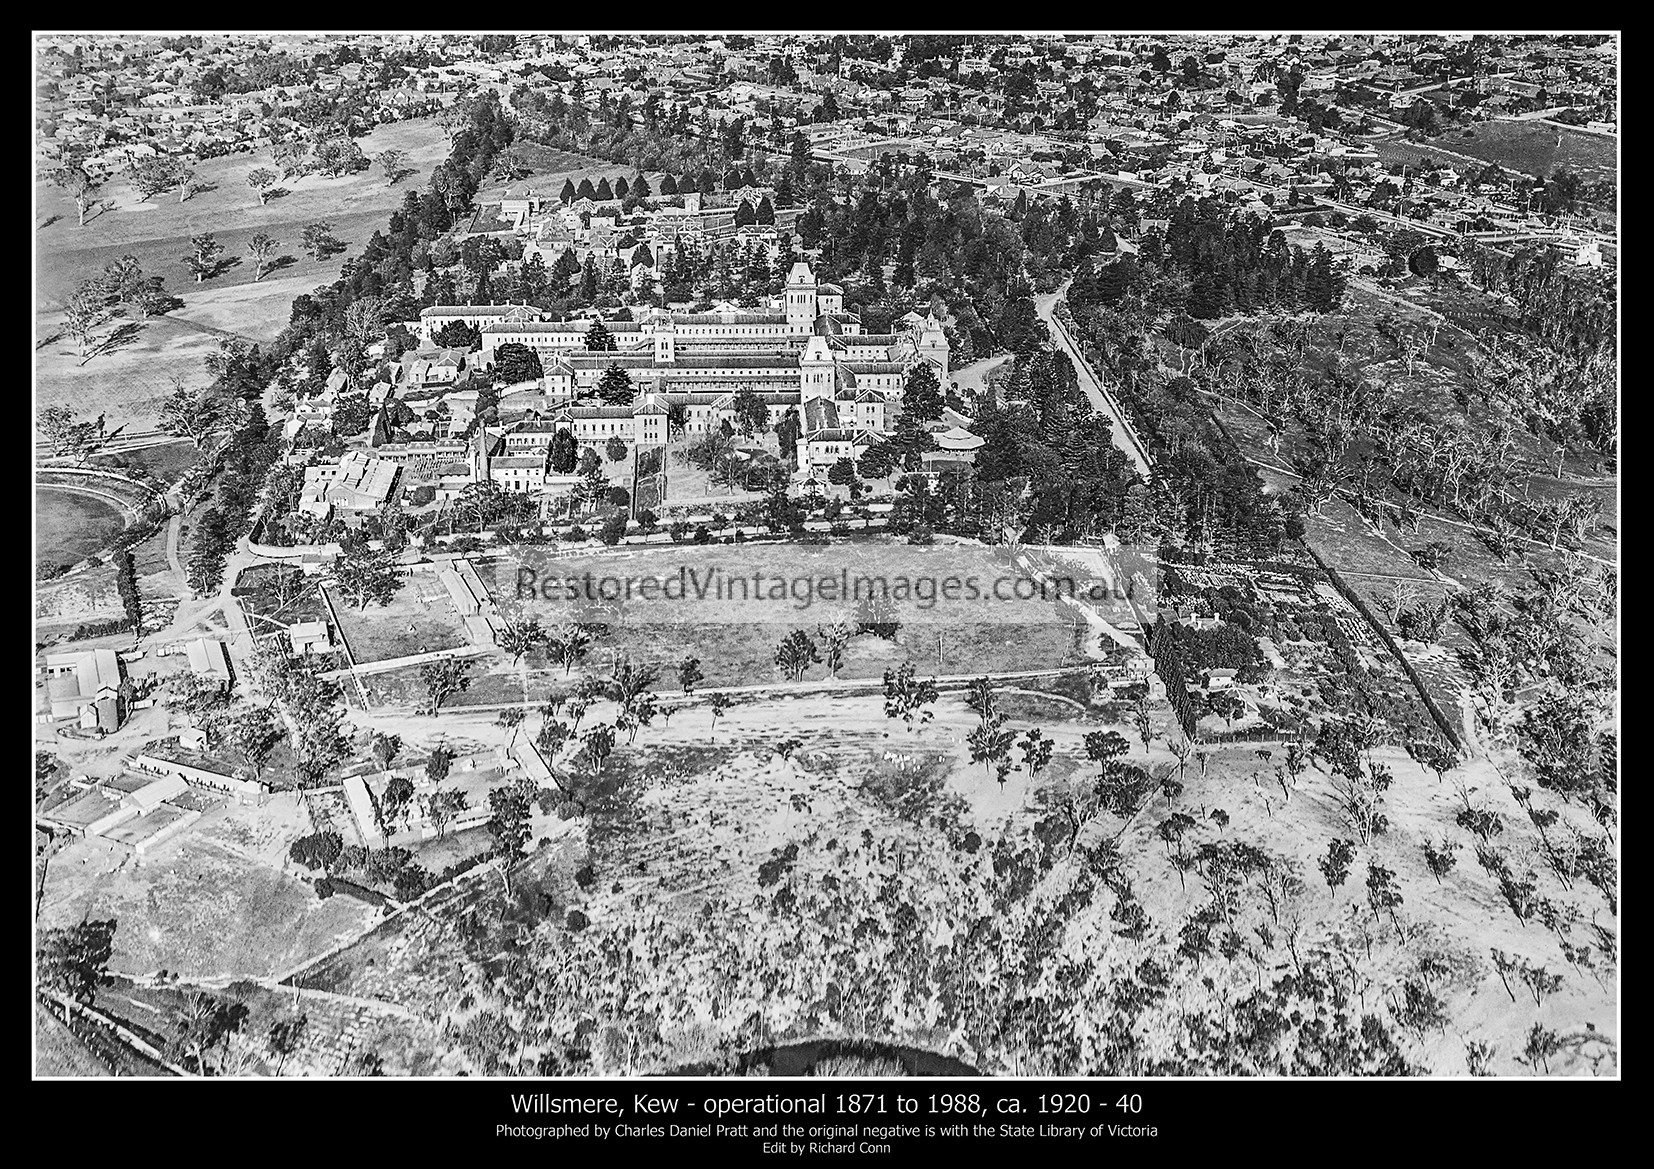 Kew – Willsmere, Aerial Image Looking East From The Yarra Across The Grounds And Buildings Ca. 1920 – 40